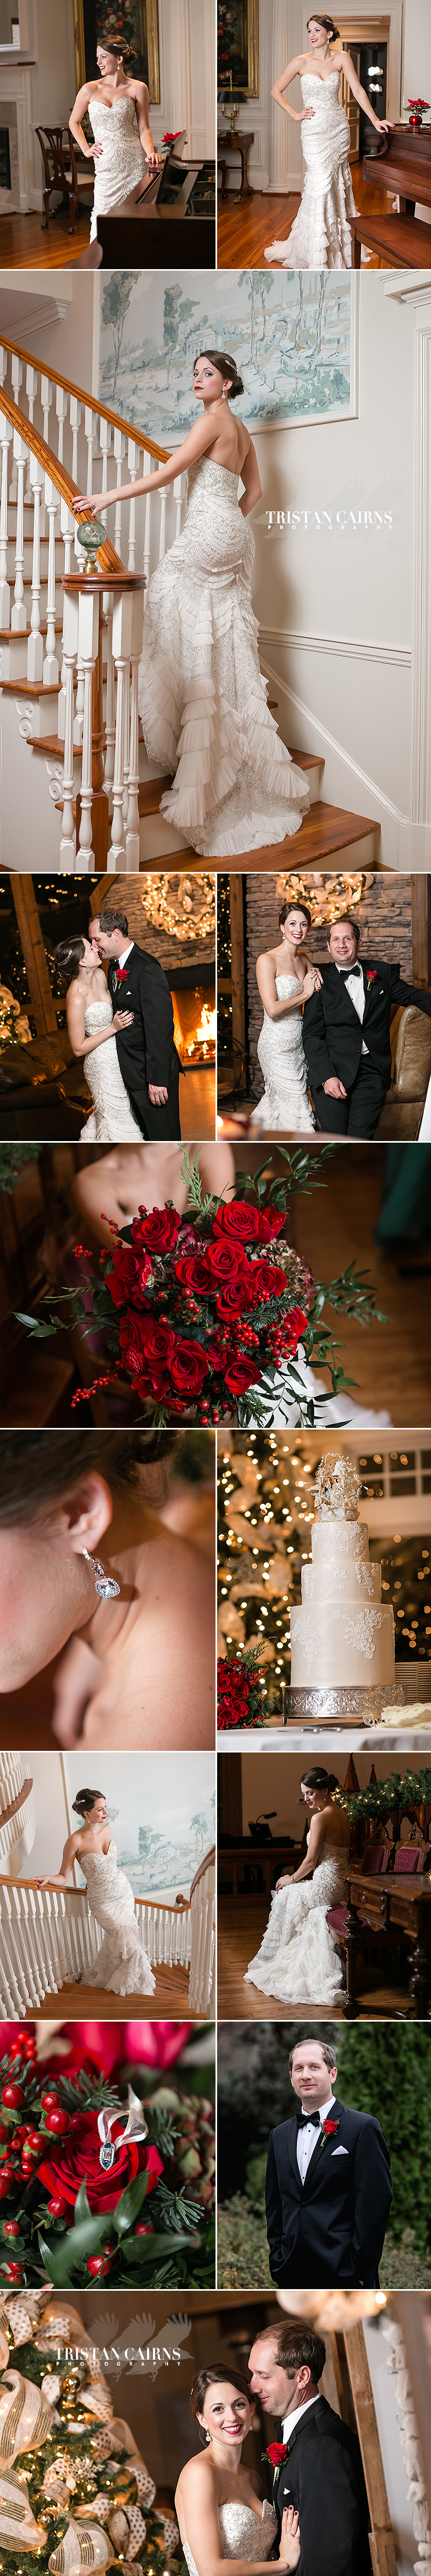 auburn-alabama-wedding-photography-2